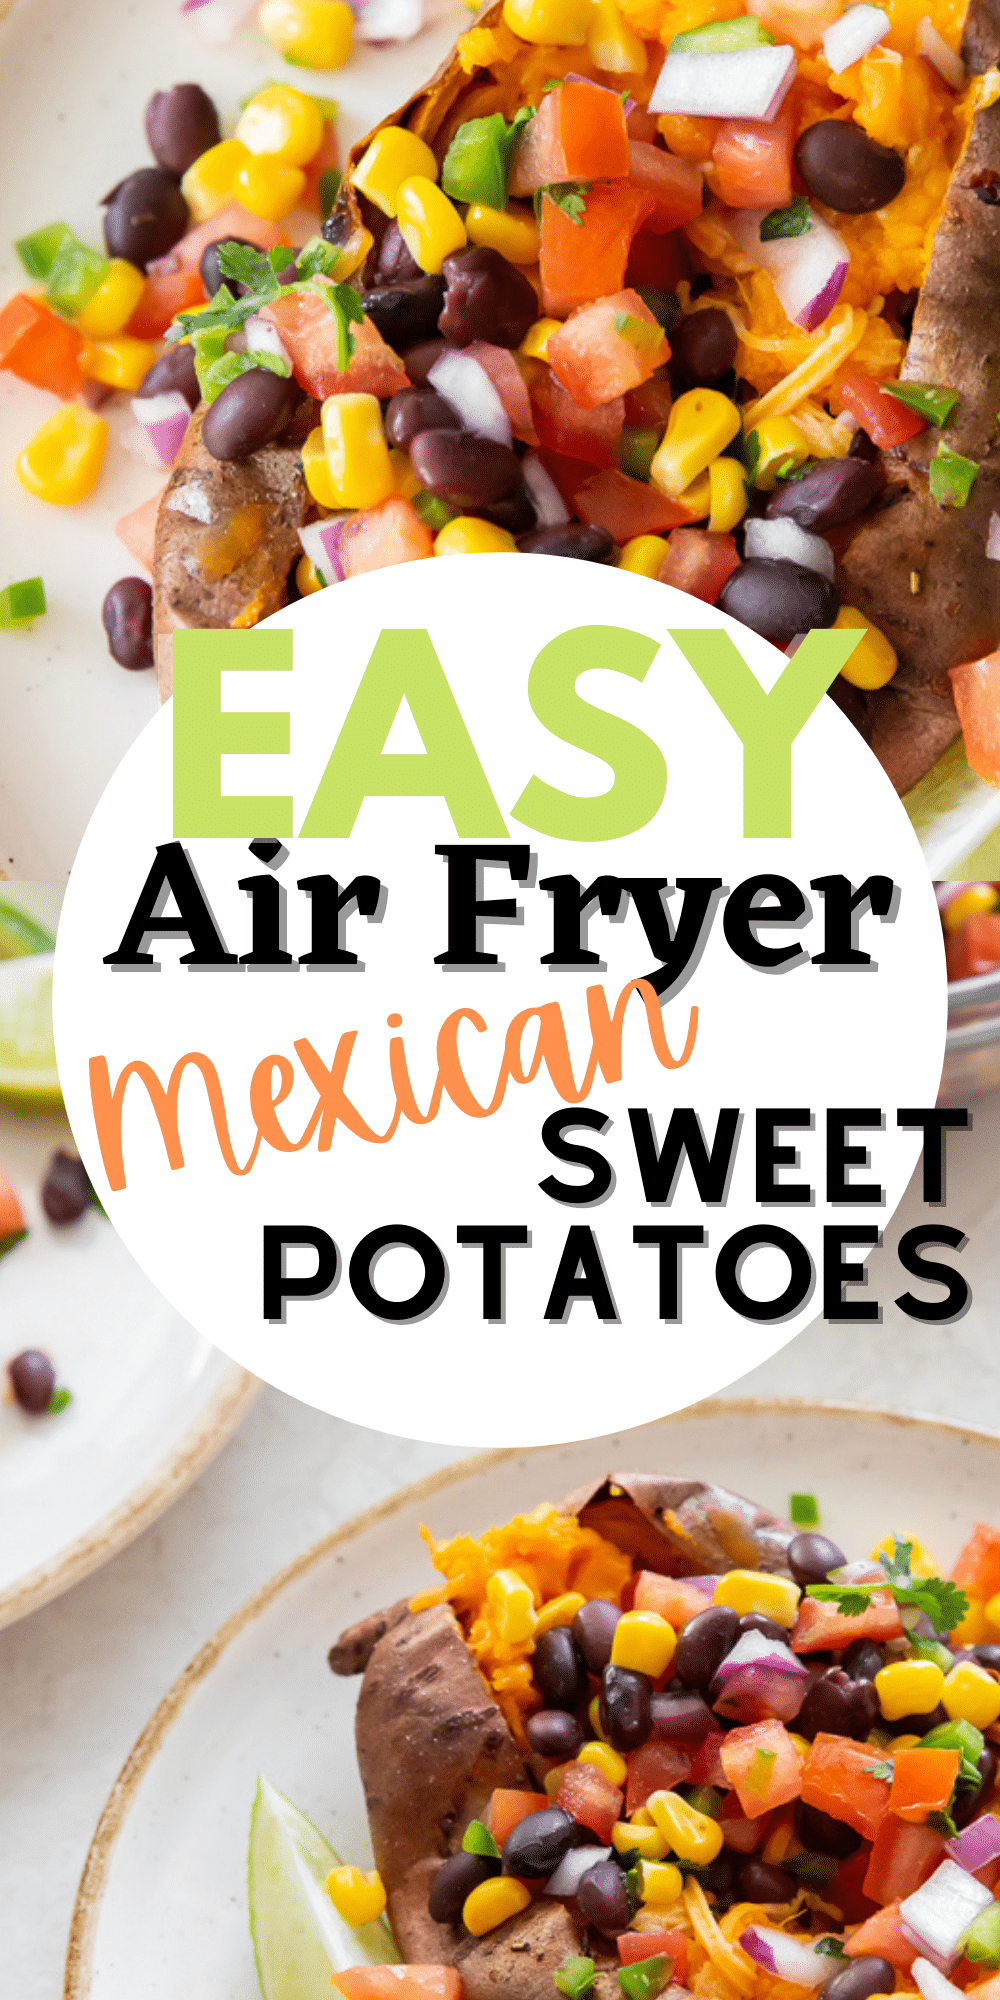 Tender, perfectly cooked Air Fryer Mexican Sweet Potatoes topped with fresh salsa are a vegan meal or side dish packed with fresh veggies and amazing flavors. This recipe is super simple, delightfully fresh, and great for meal prep too. #sweetpotatoes #freshsalsa via @vegetarianmamma